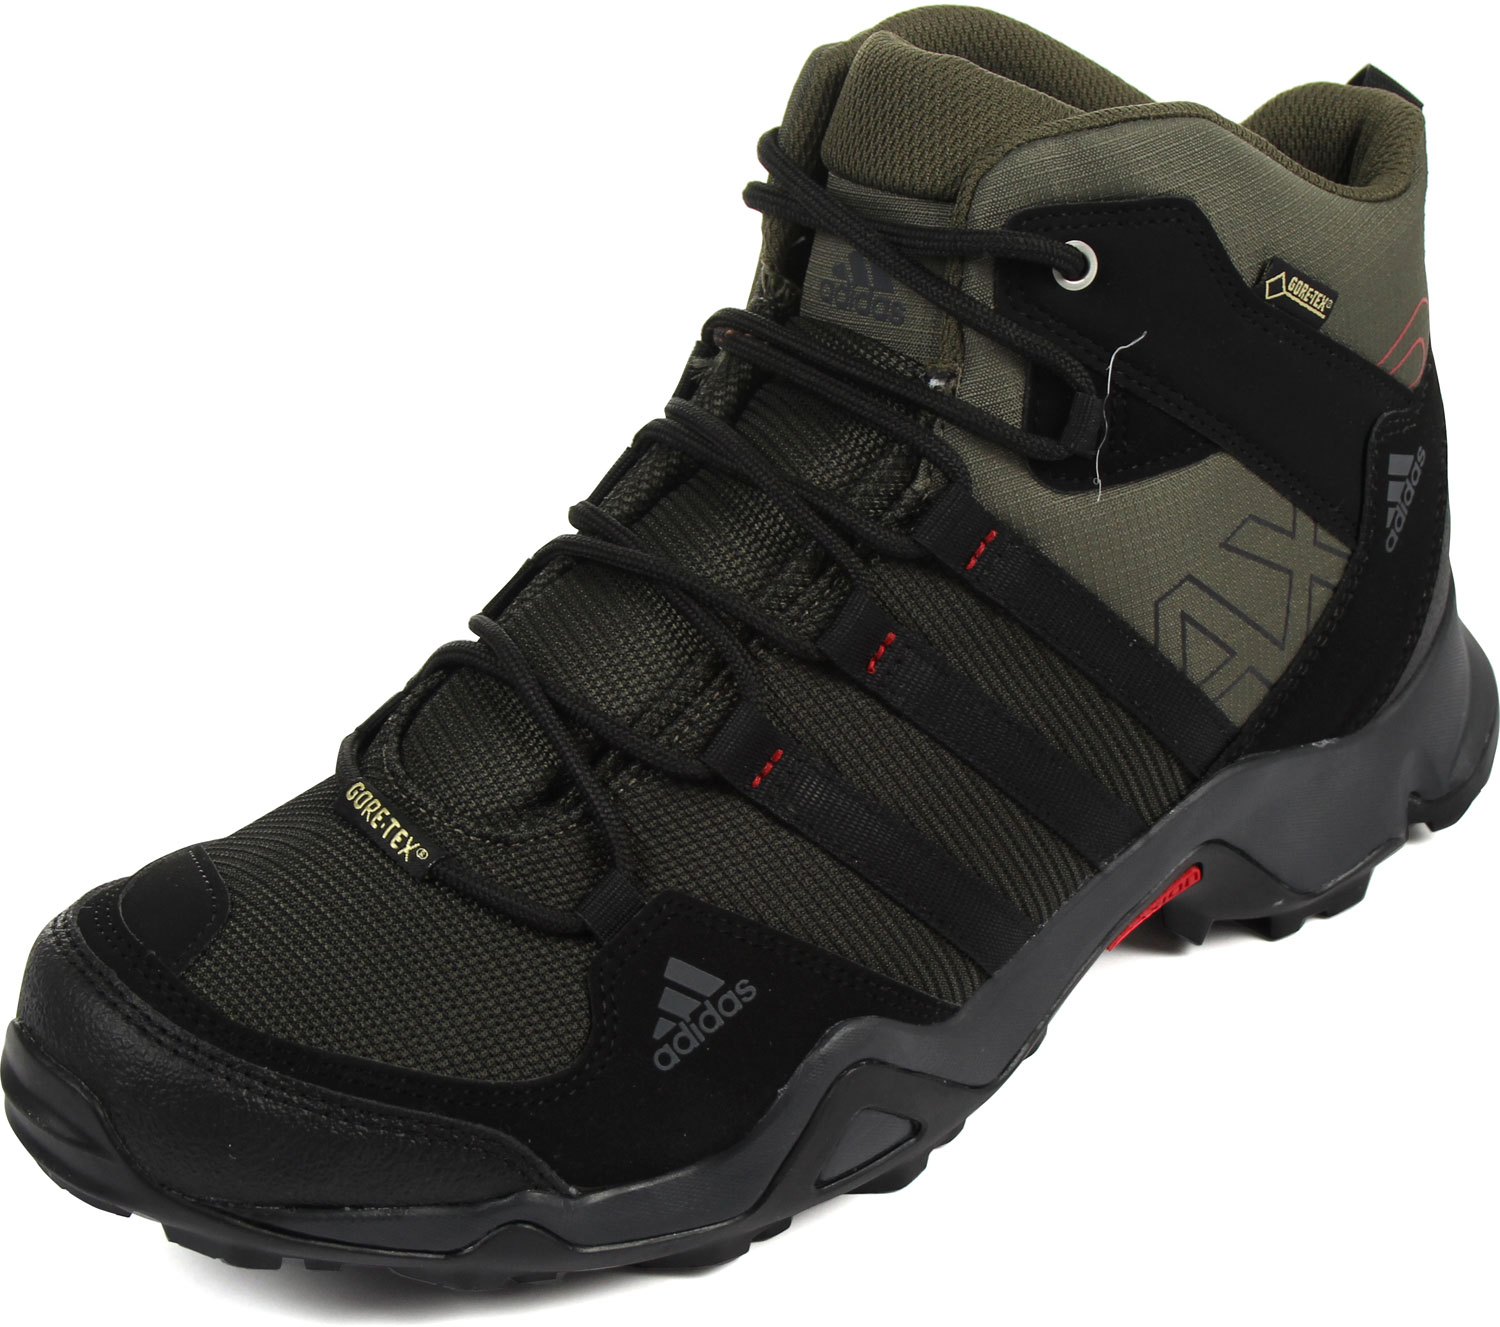 Image of Adidas - Mens AX 2 Mid GTX Hiking Shoes